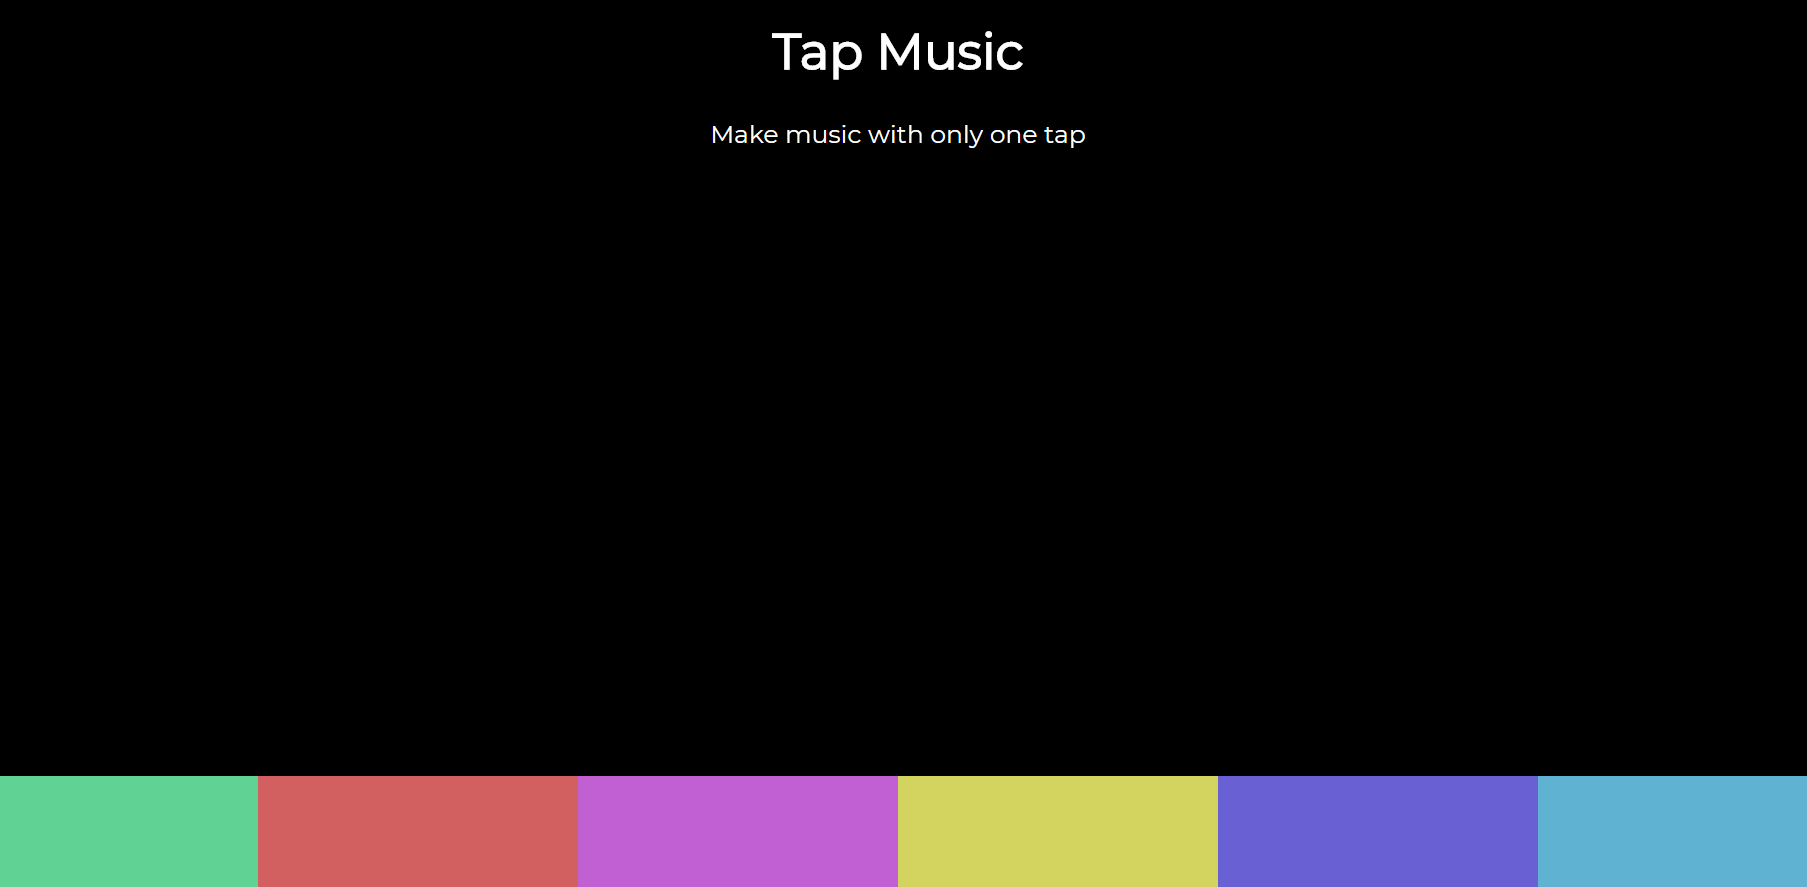 image of music player